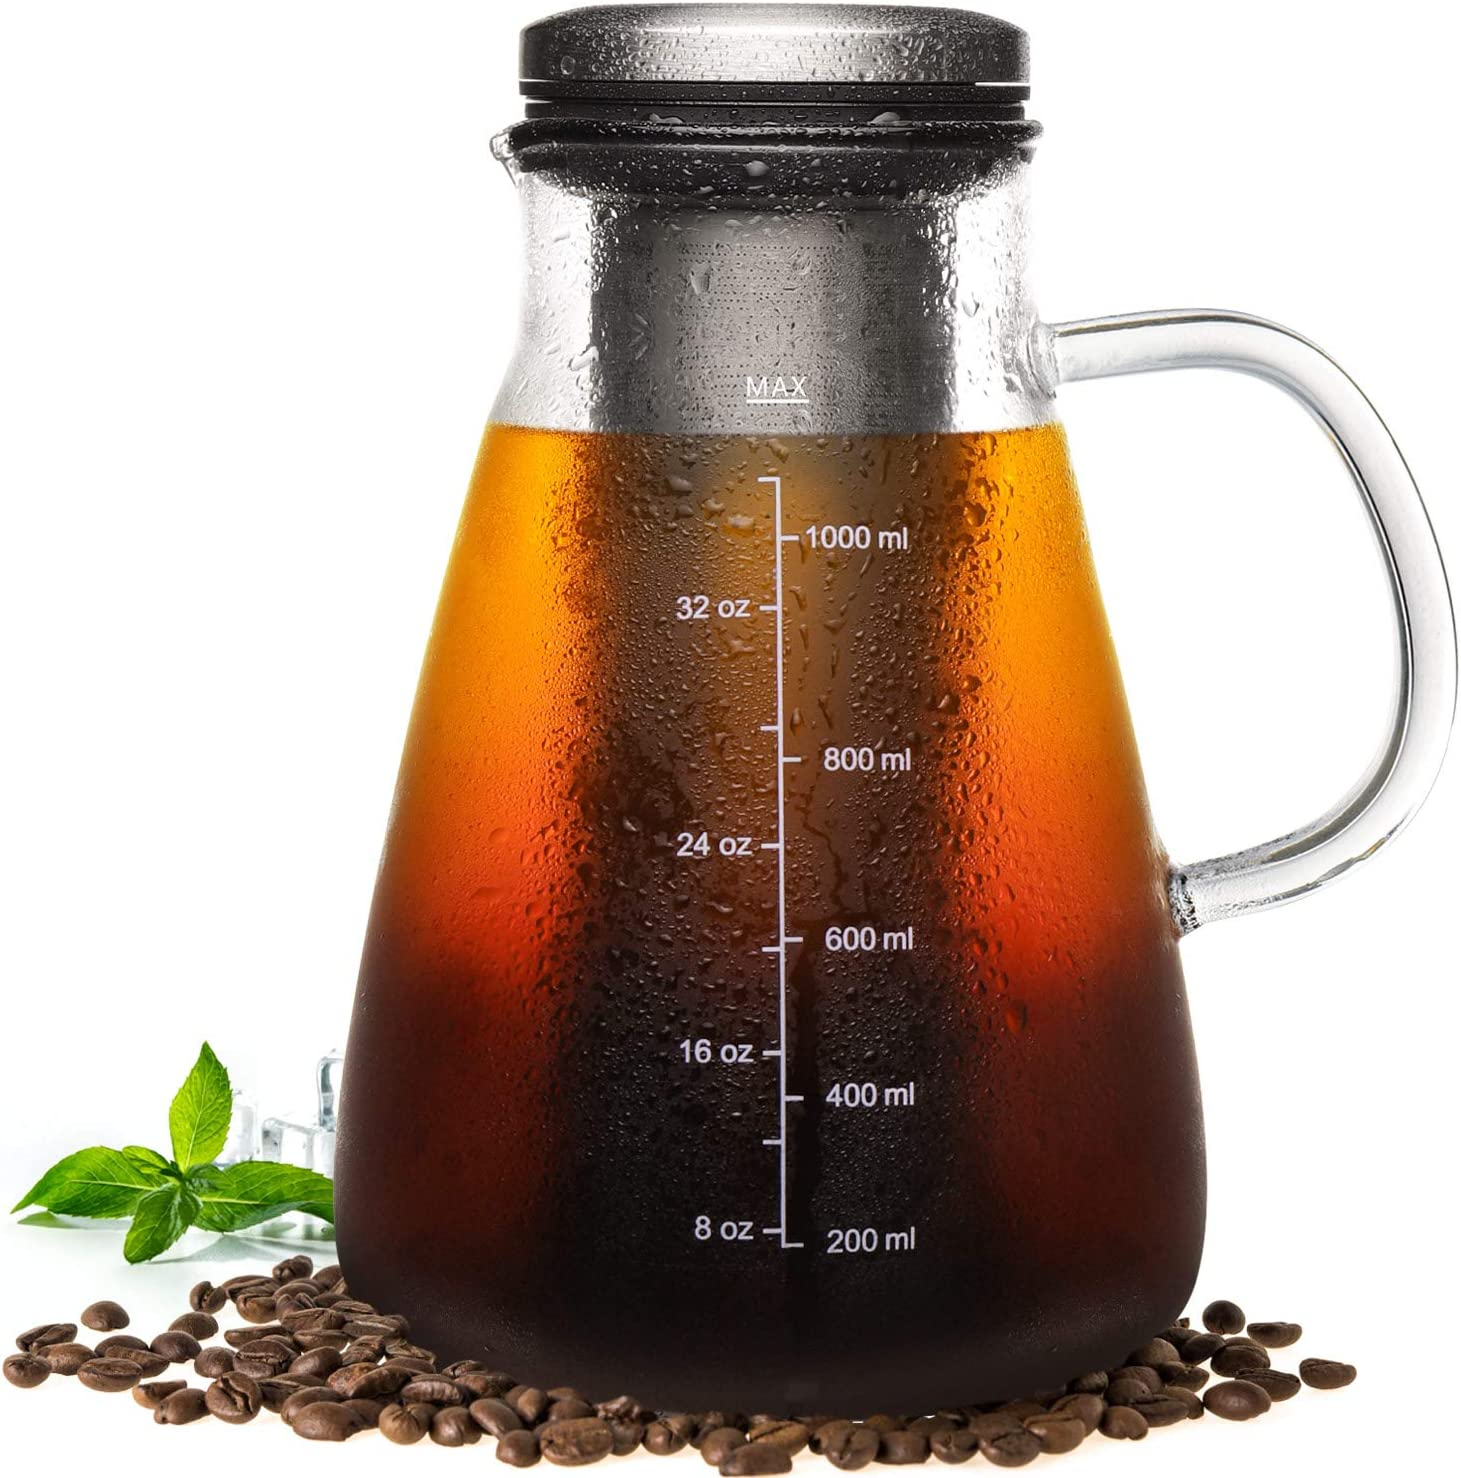 Veken Cold Brew Iced Coffee Maker Iced Tea Maker -1.0L 34oz Glass Carafe with Removable Double Mesh Stainless Steel Filter, Includes Non-Slip Silicone Base and Sponge Brush